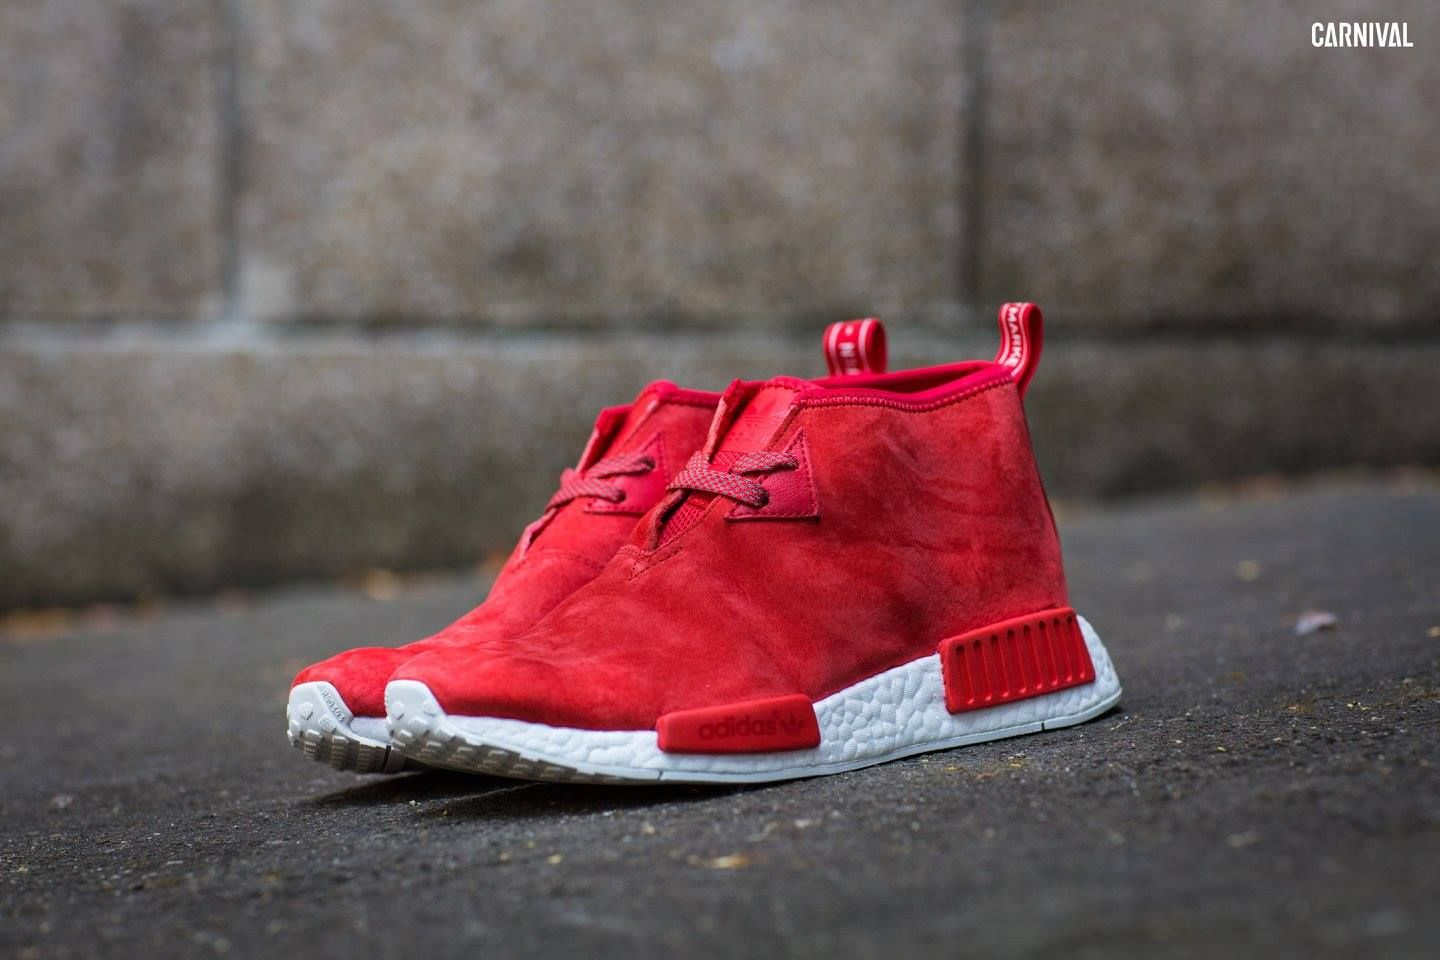 Brand New Adidas NMD OG 17' Size 9.5 for sale in Los Angeles, CA